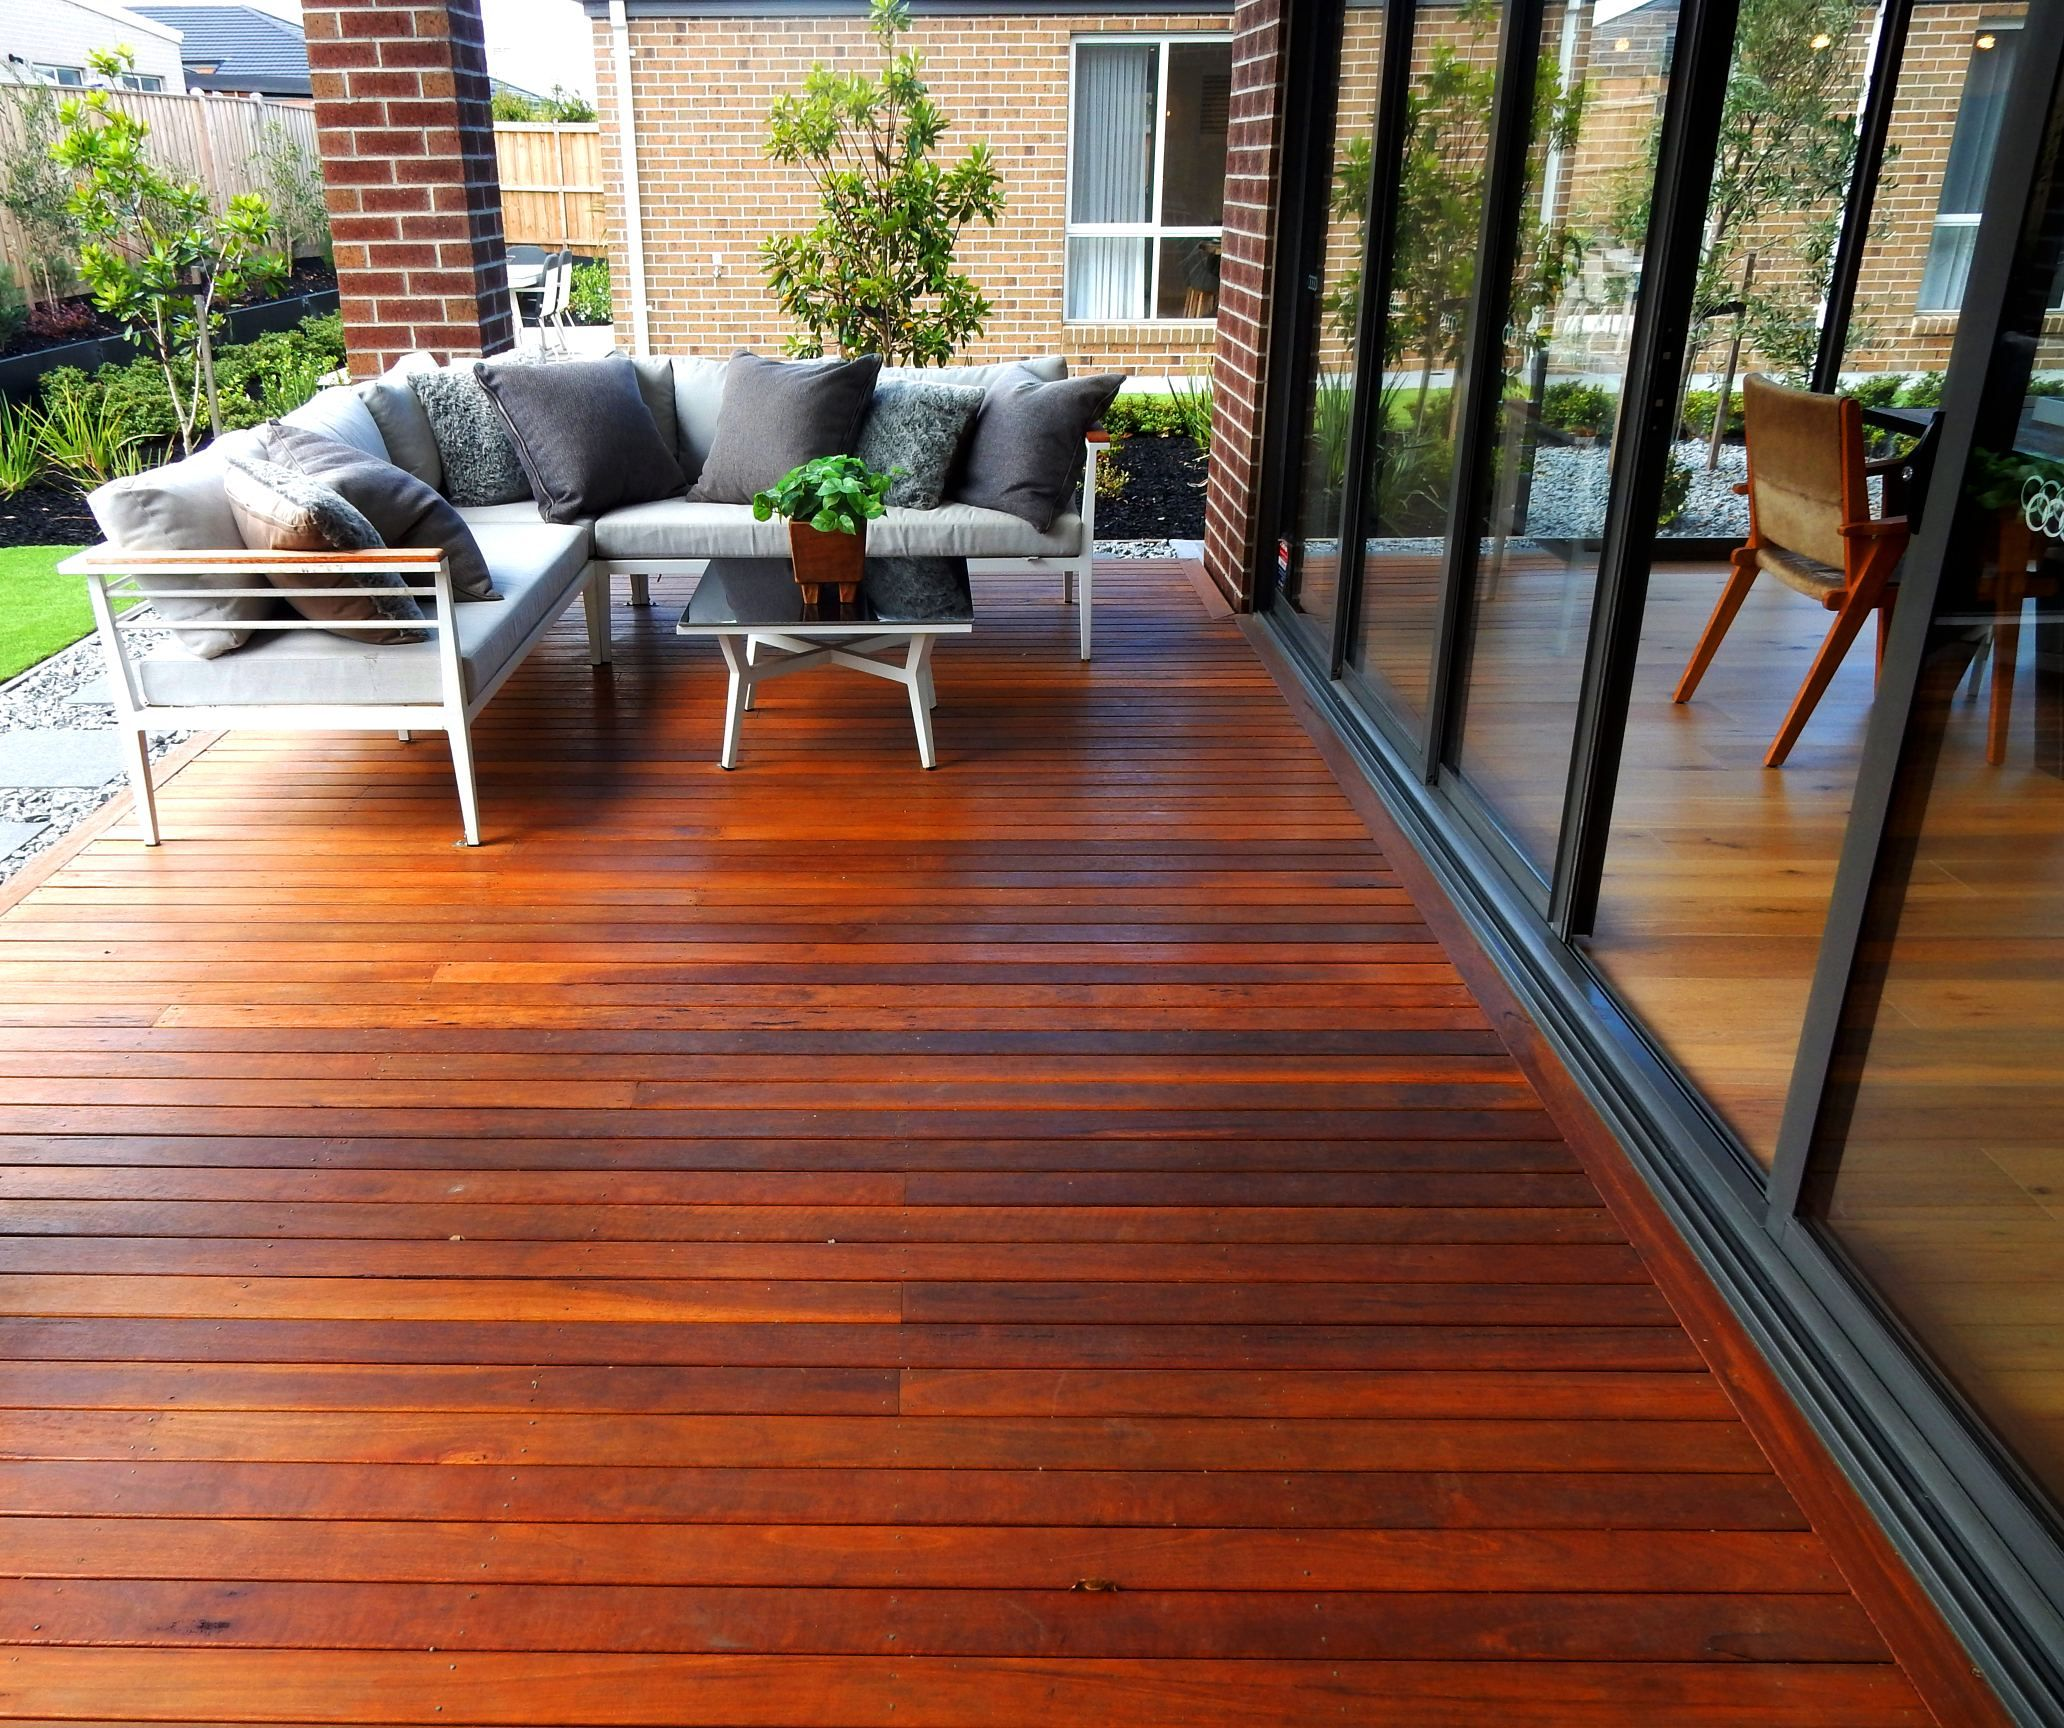 Chippy S Outdoor Supplied Homebuyer S Centre With Spotted Gum Decking Timber For Their Mount Duneed Display Centre We S Spotted Gum Decking Timber Deck Deck